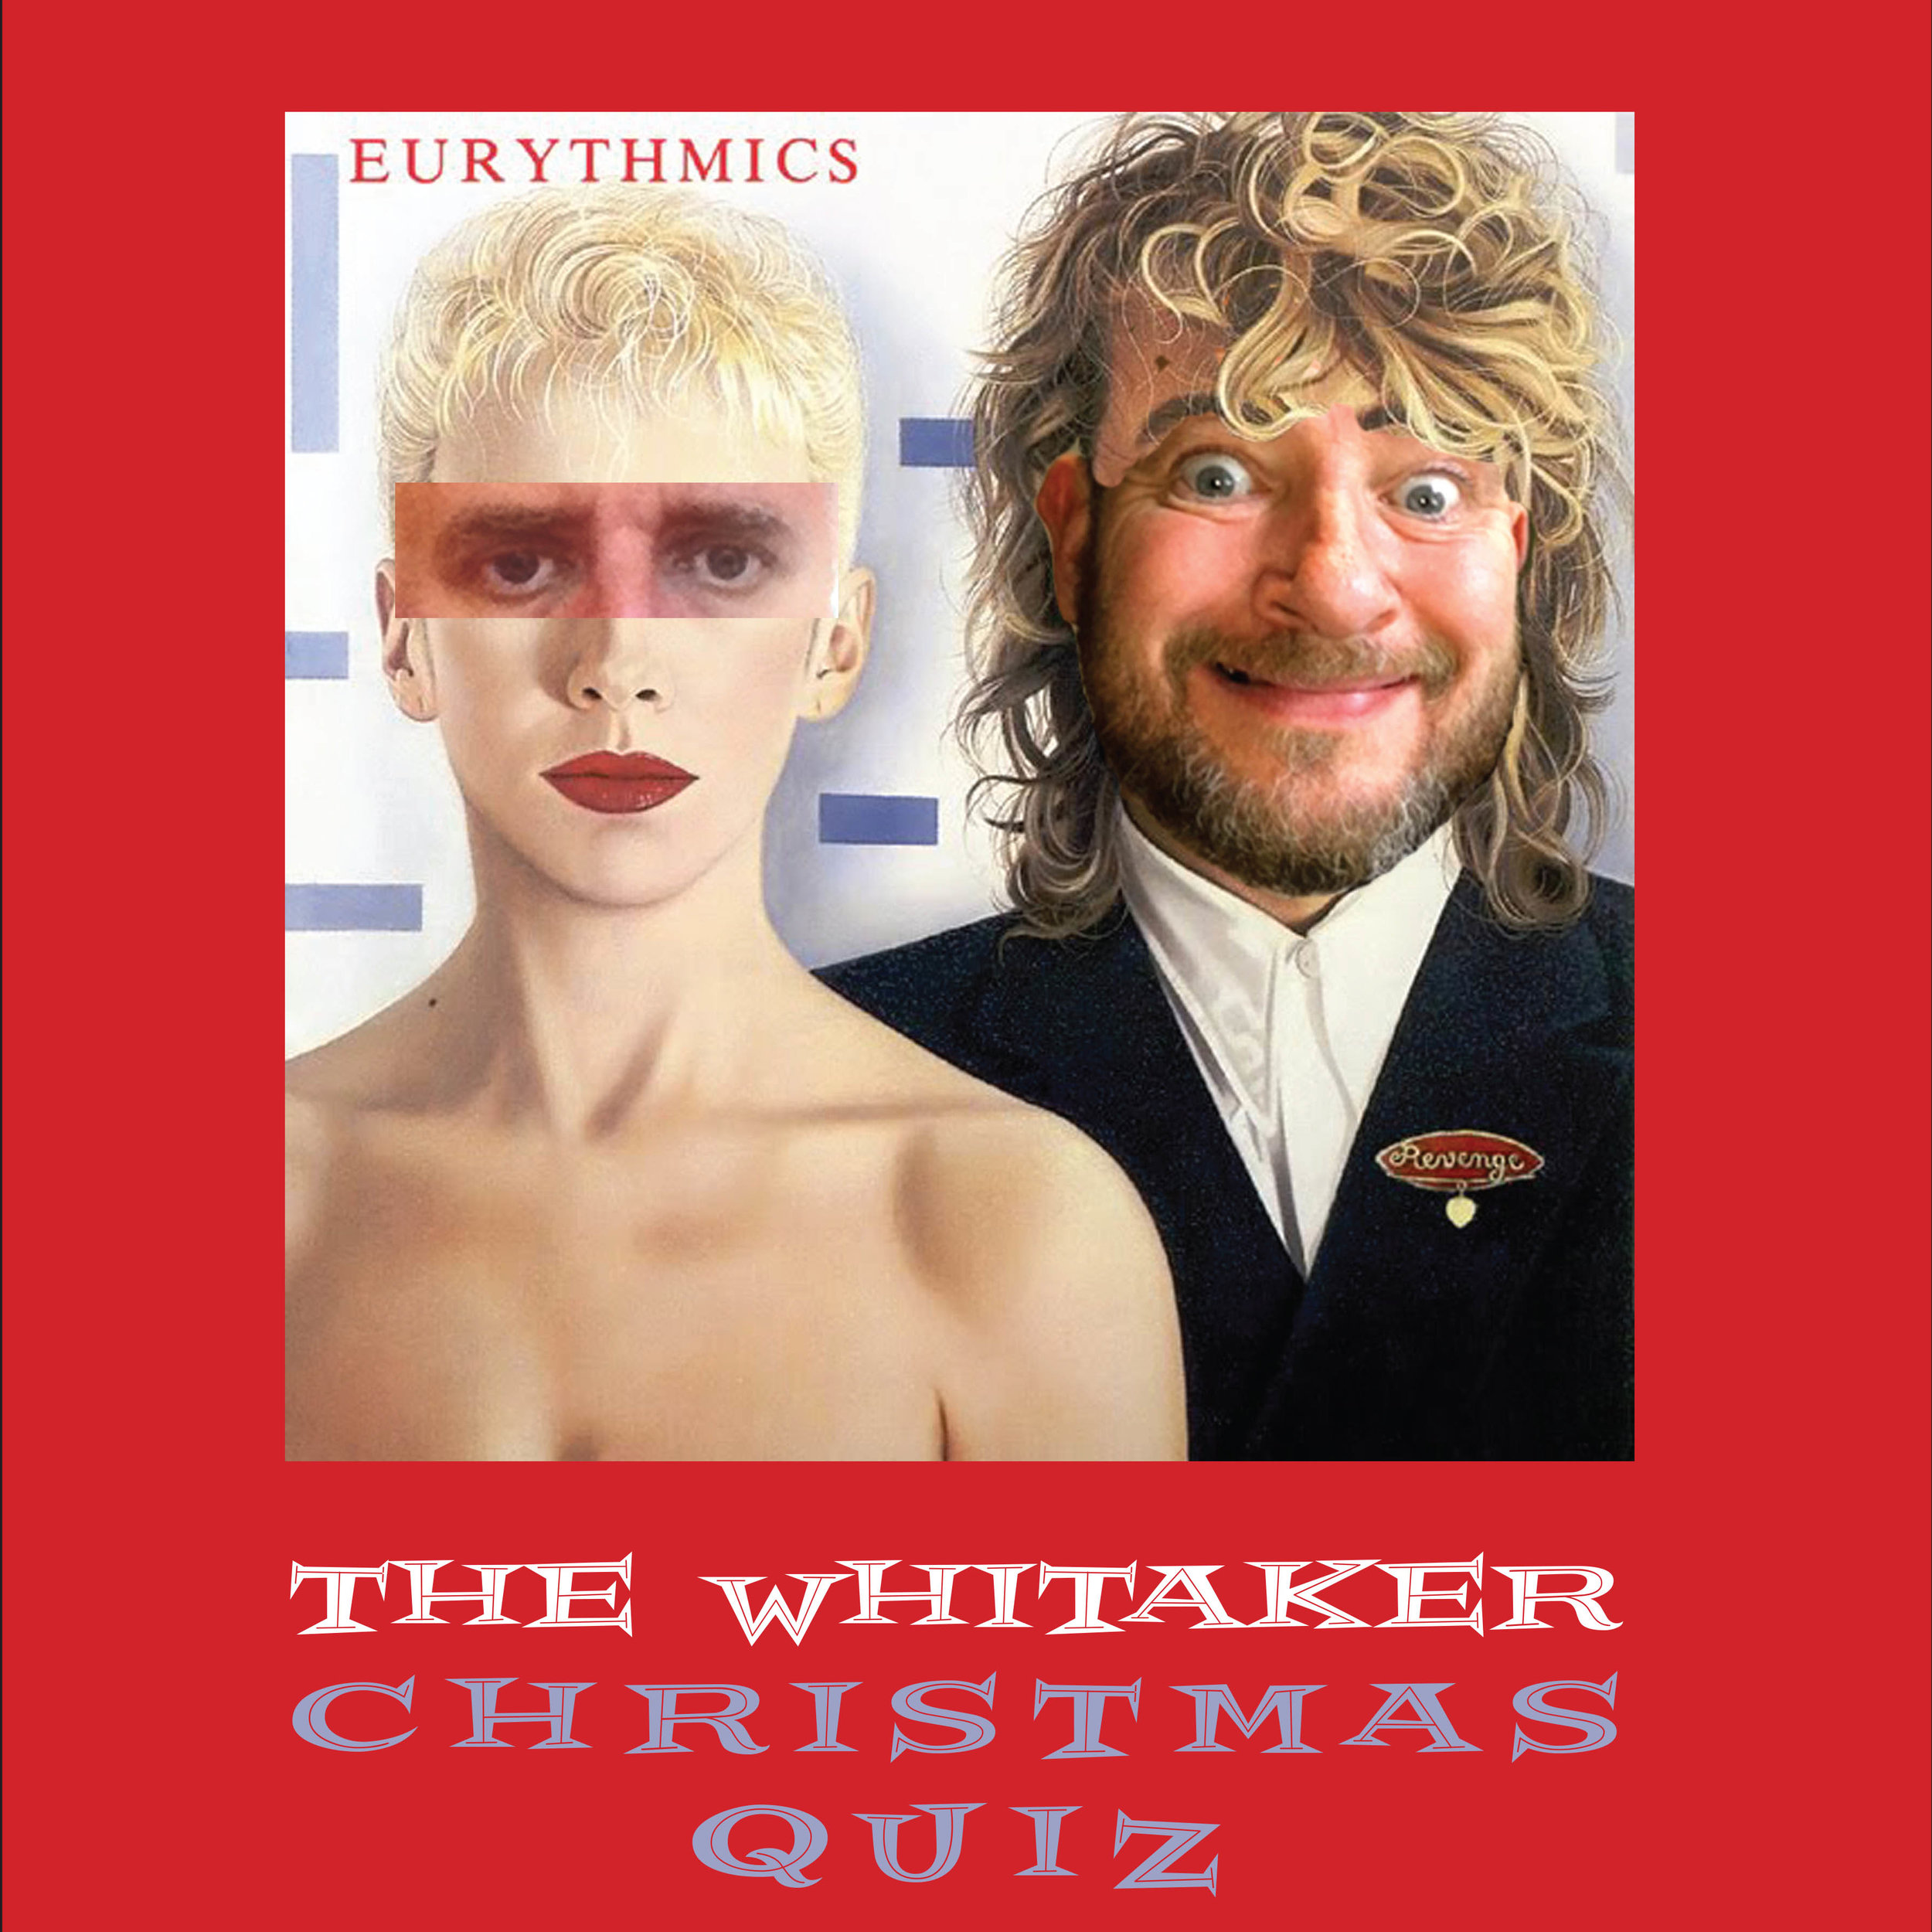 The Whitaker Christmas Quiz